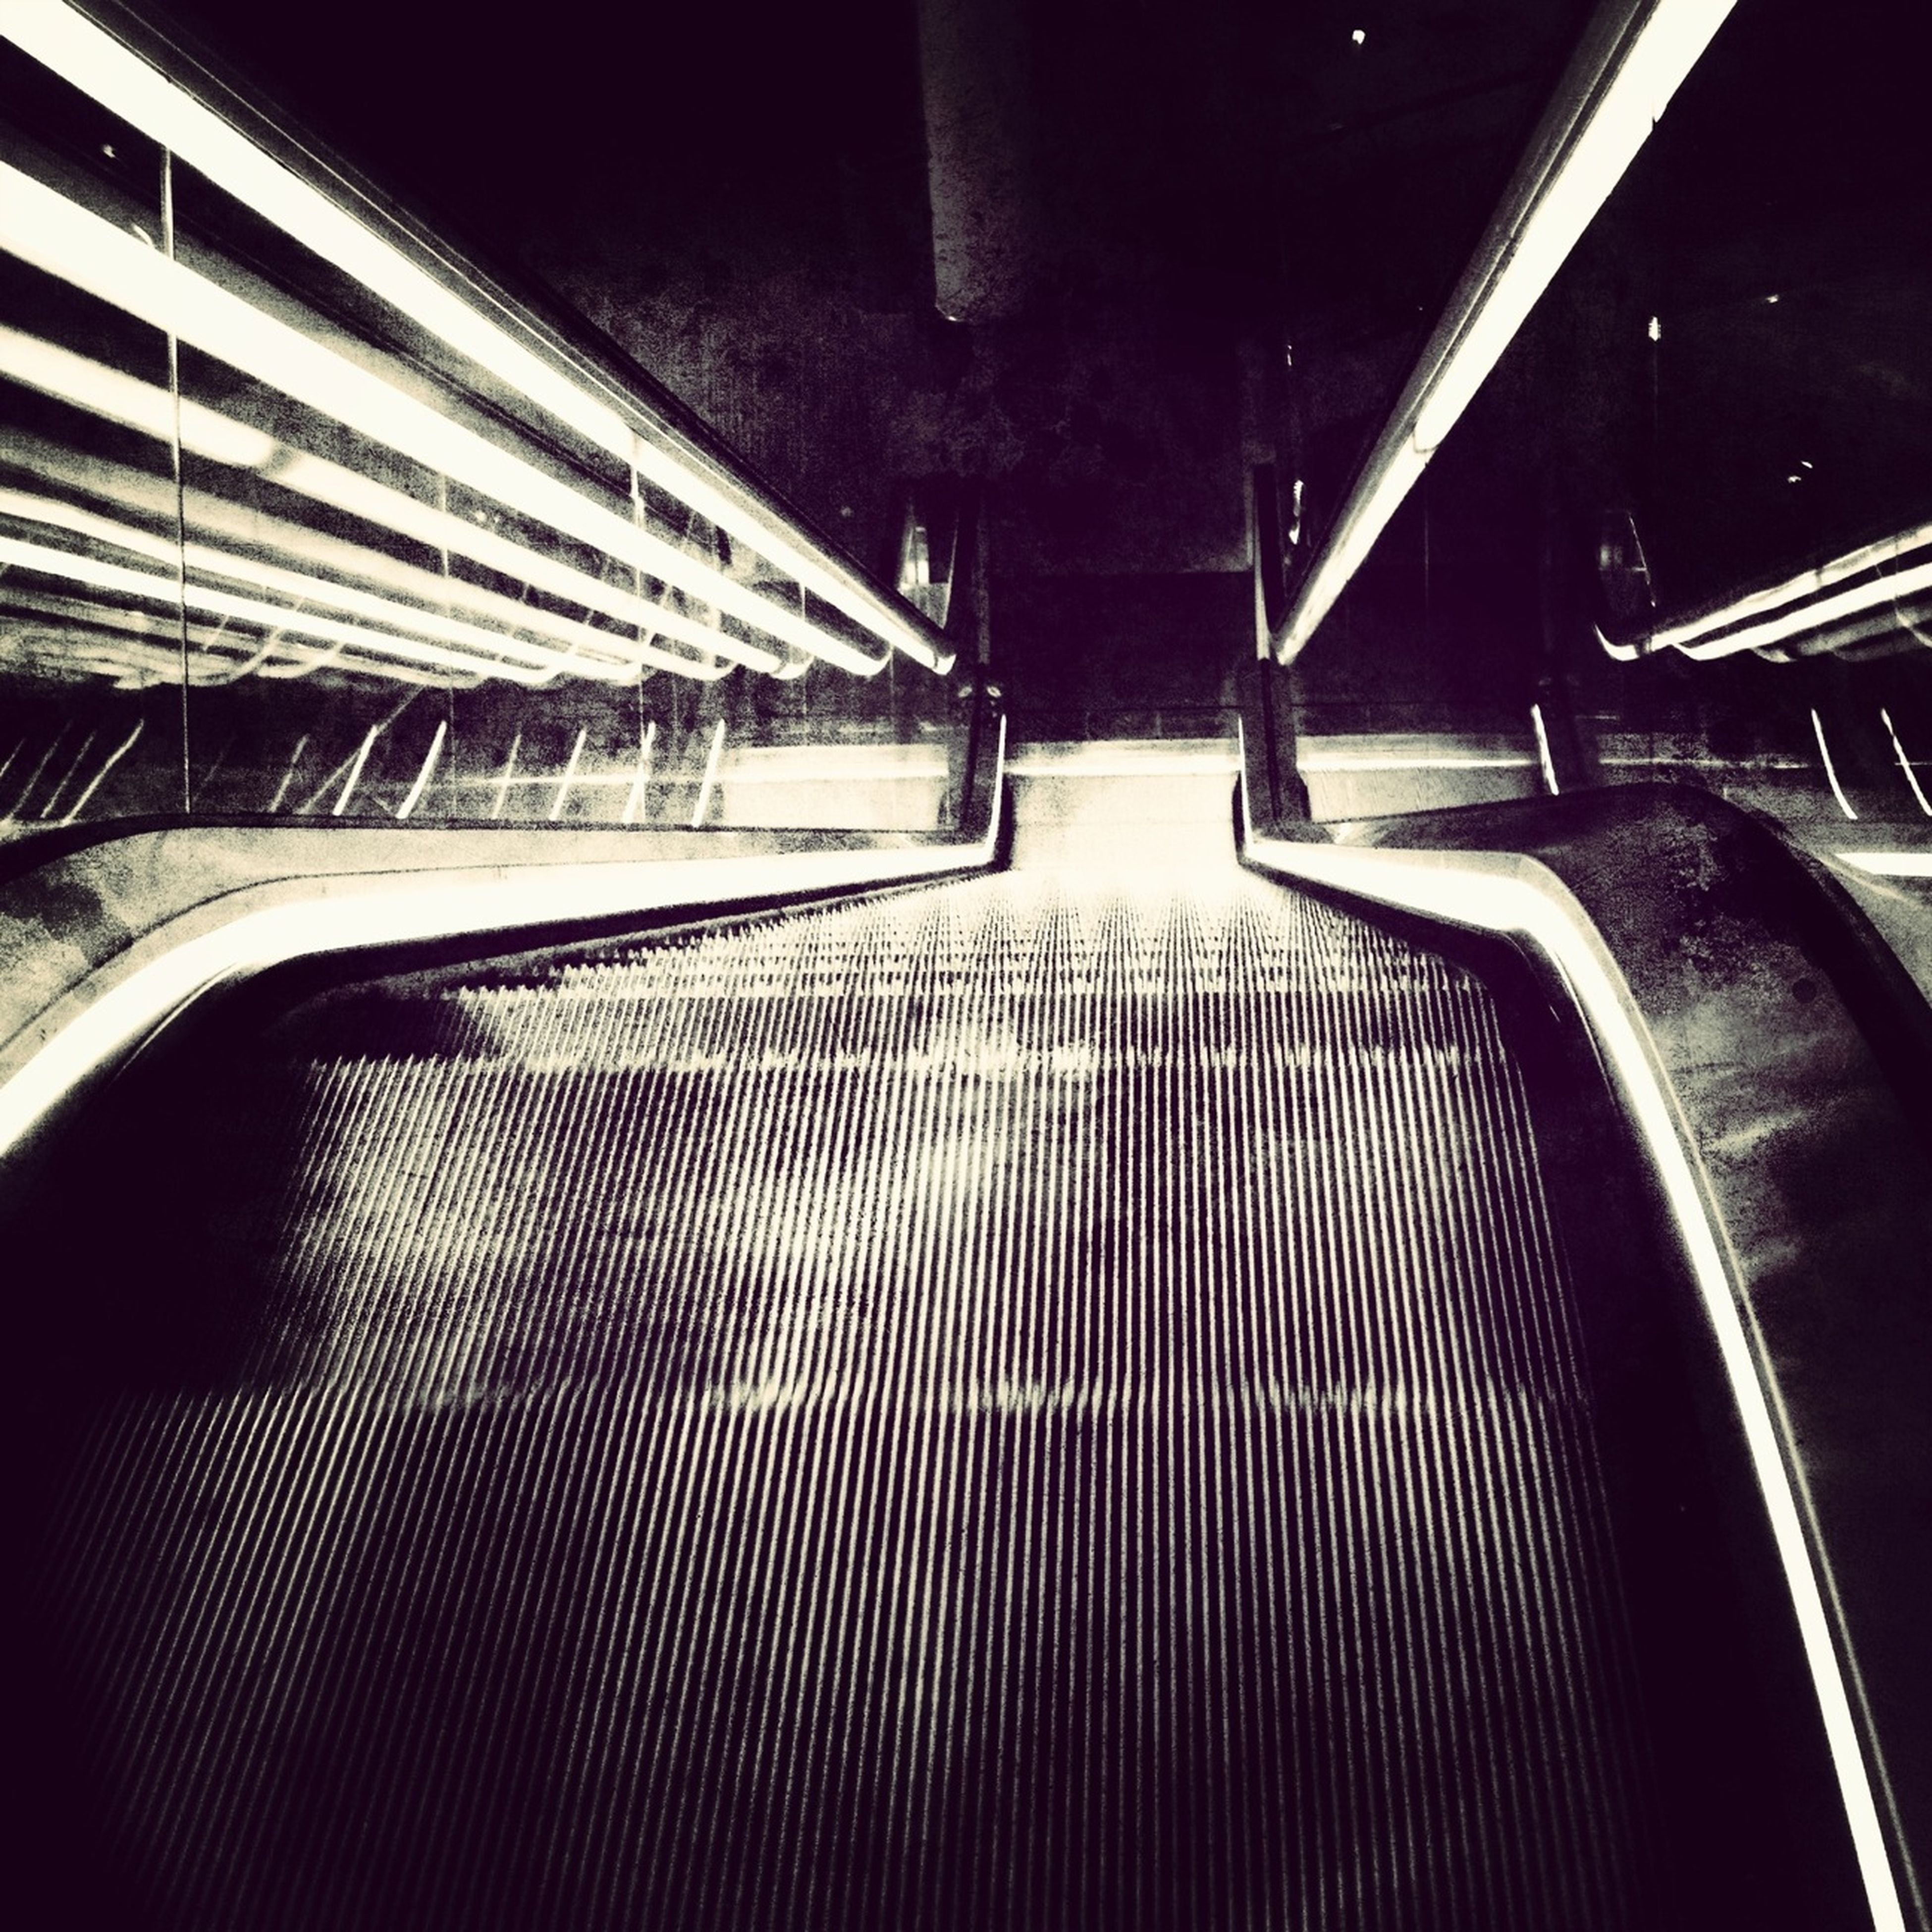 steps and staircases, steps, railing, staircase, indoors, high angle view, illuminated, escalator, empty, night, metal, absence, the way forward, built structure, transportation, pattern, architecture, no people, diminishing perspective, seat